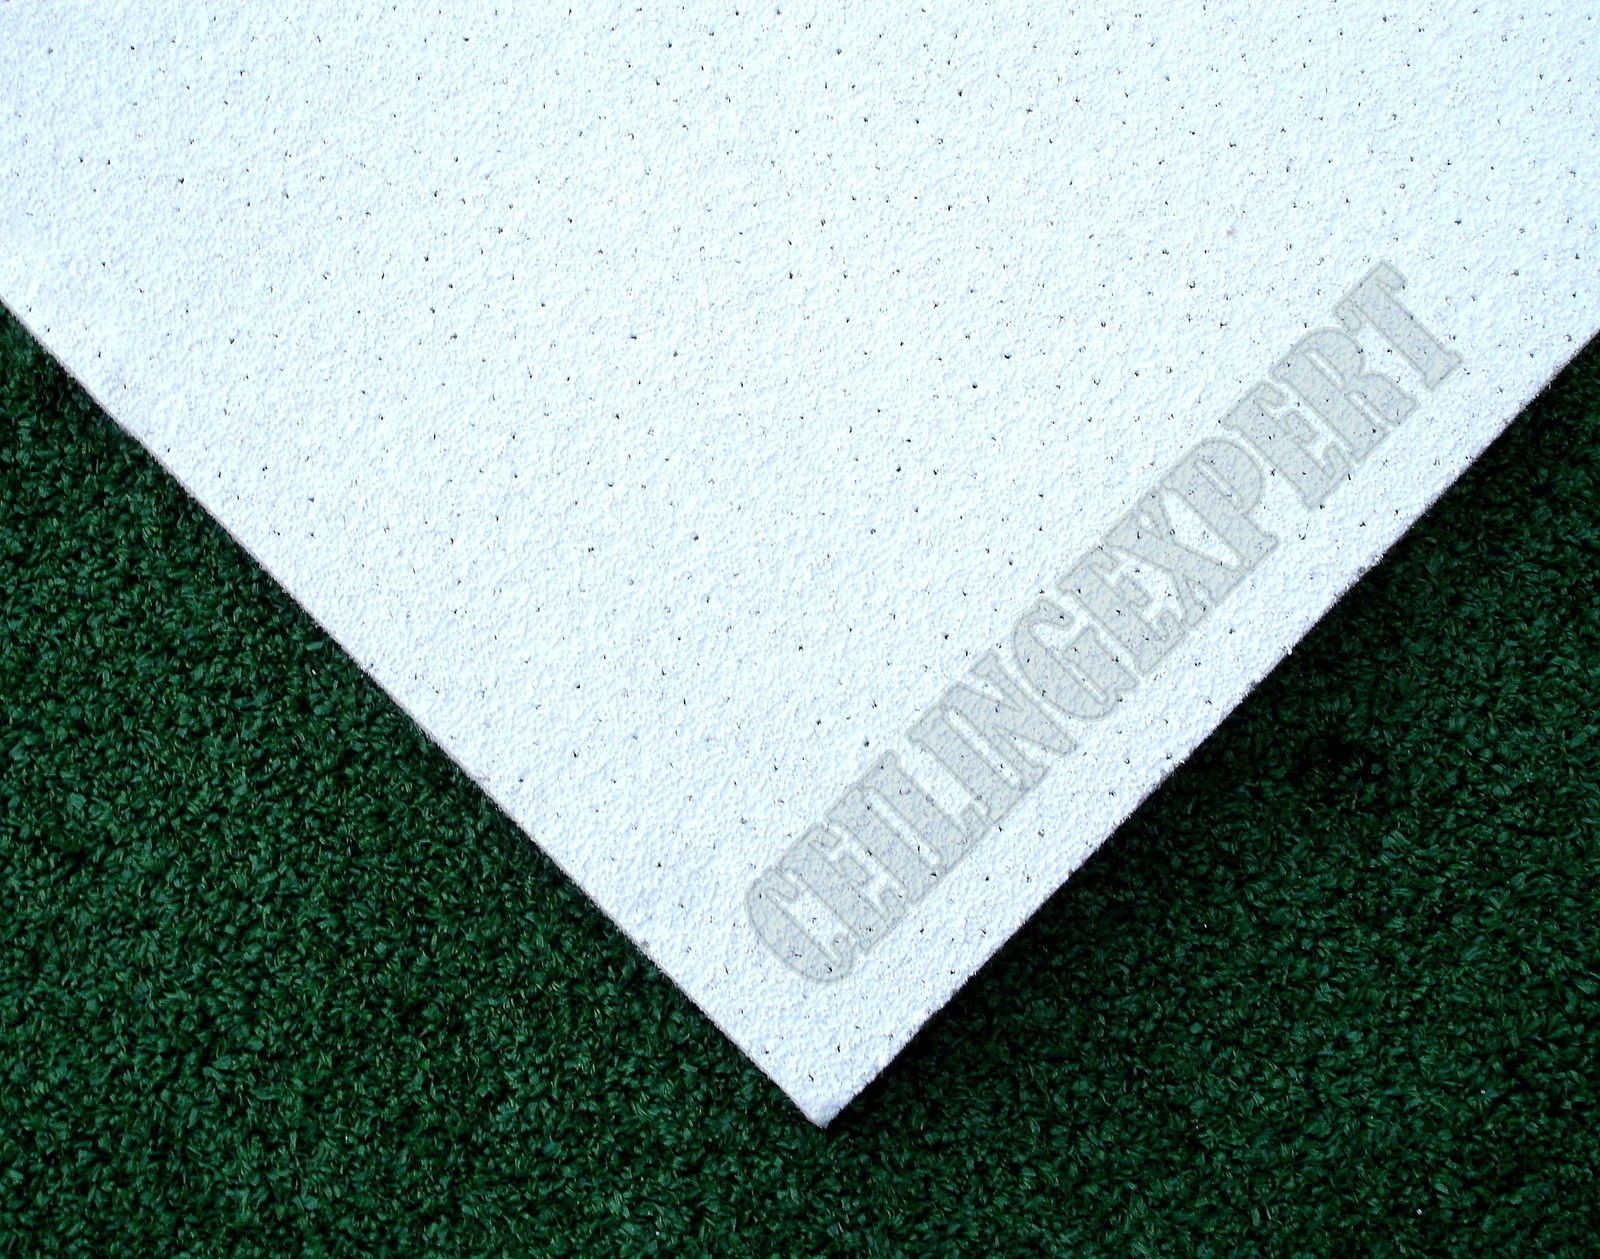 Dune supreme flat ceiling tiles board 1200 x 600mm edge 24mm grid armstrong dune supreme flat ceiling tiles board 1200 x 600mm edge 24mm grid dailygadgetfo Images